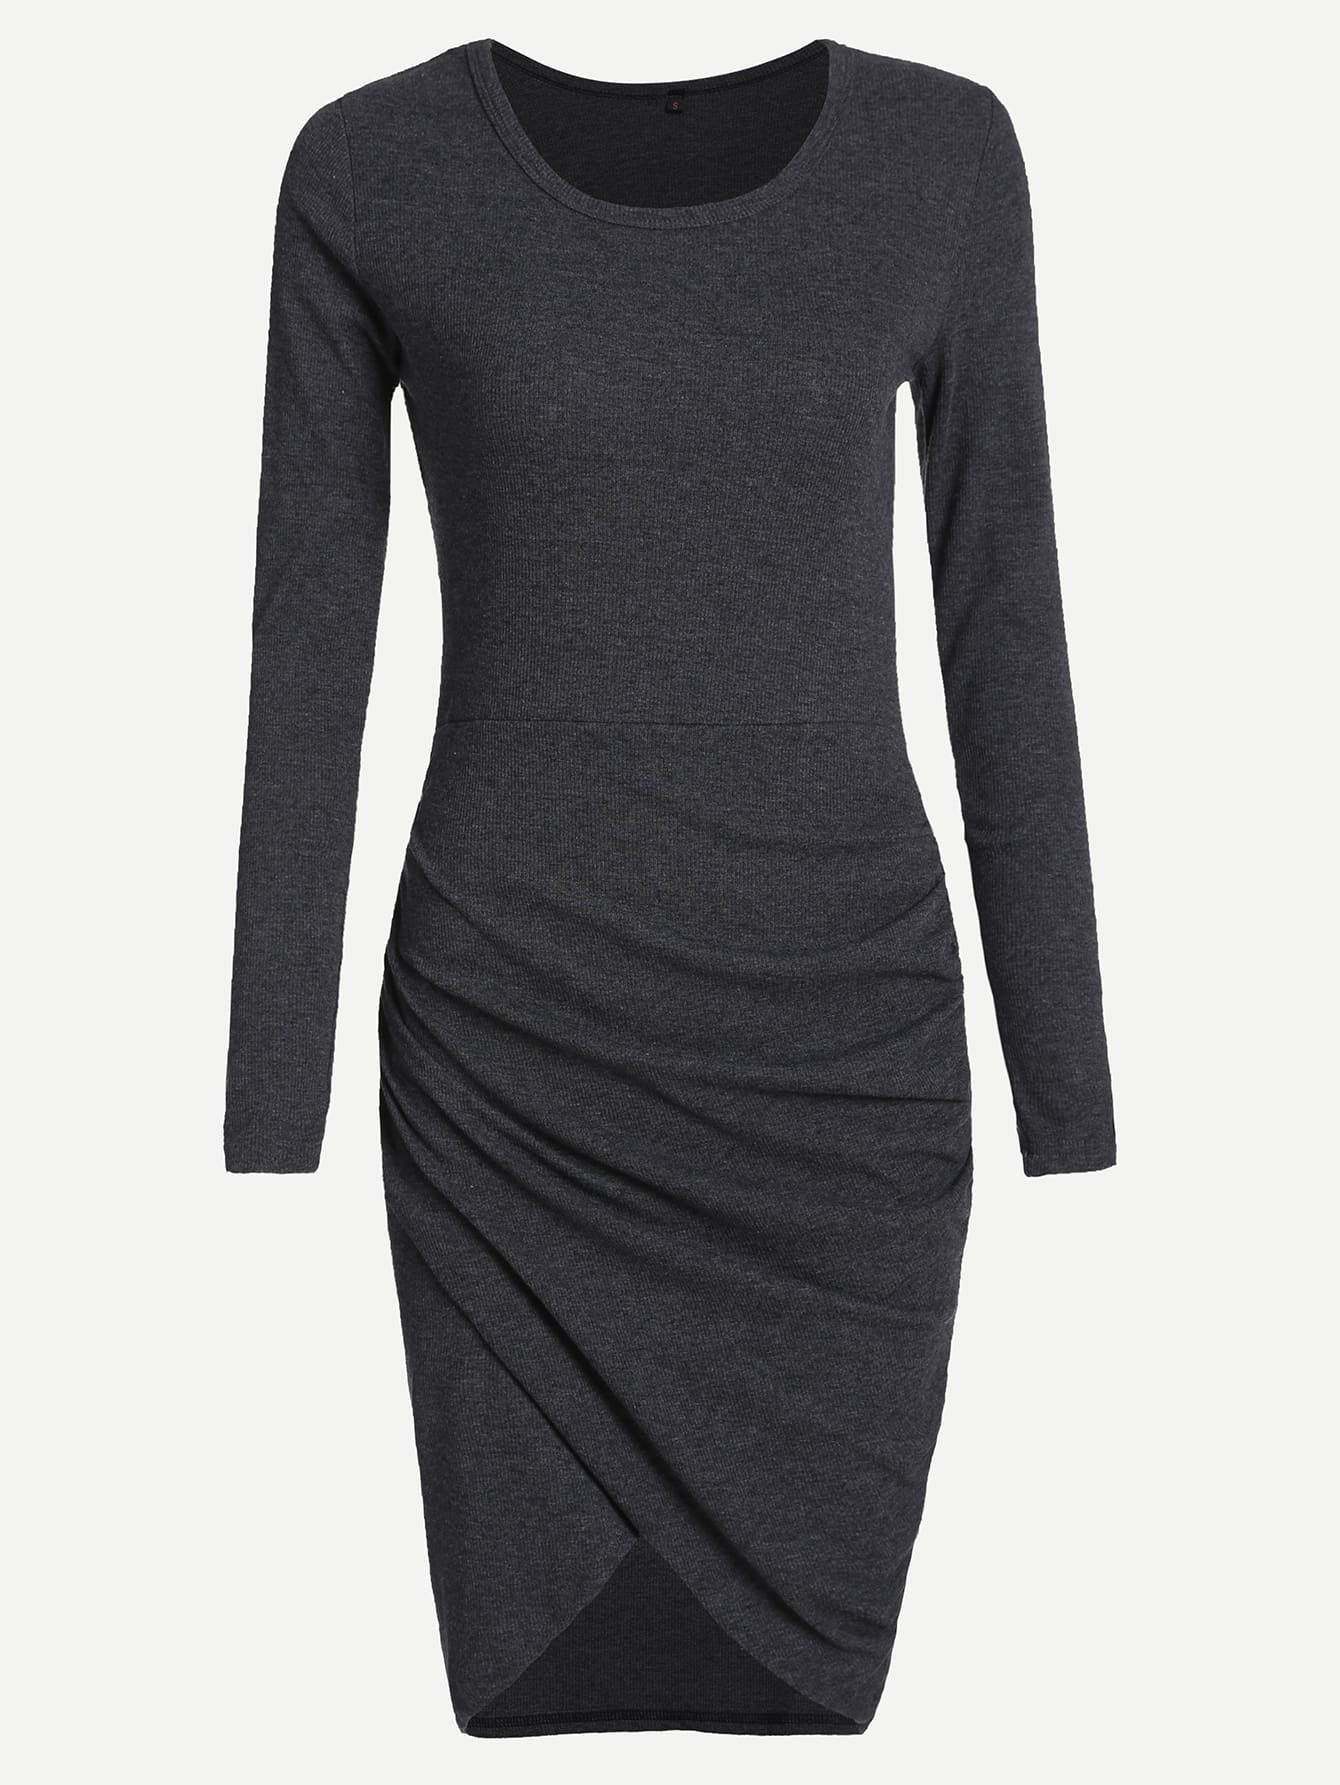 Grey Round Neck Long Sleeve Dress dress161011482